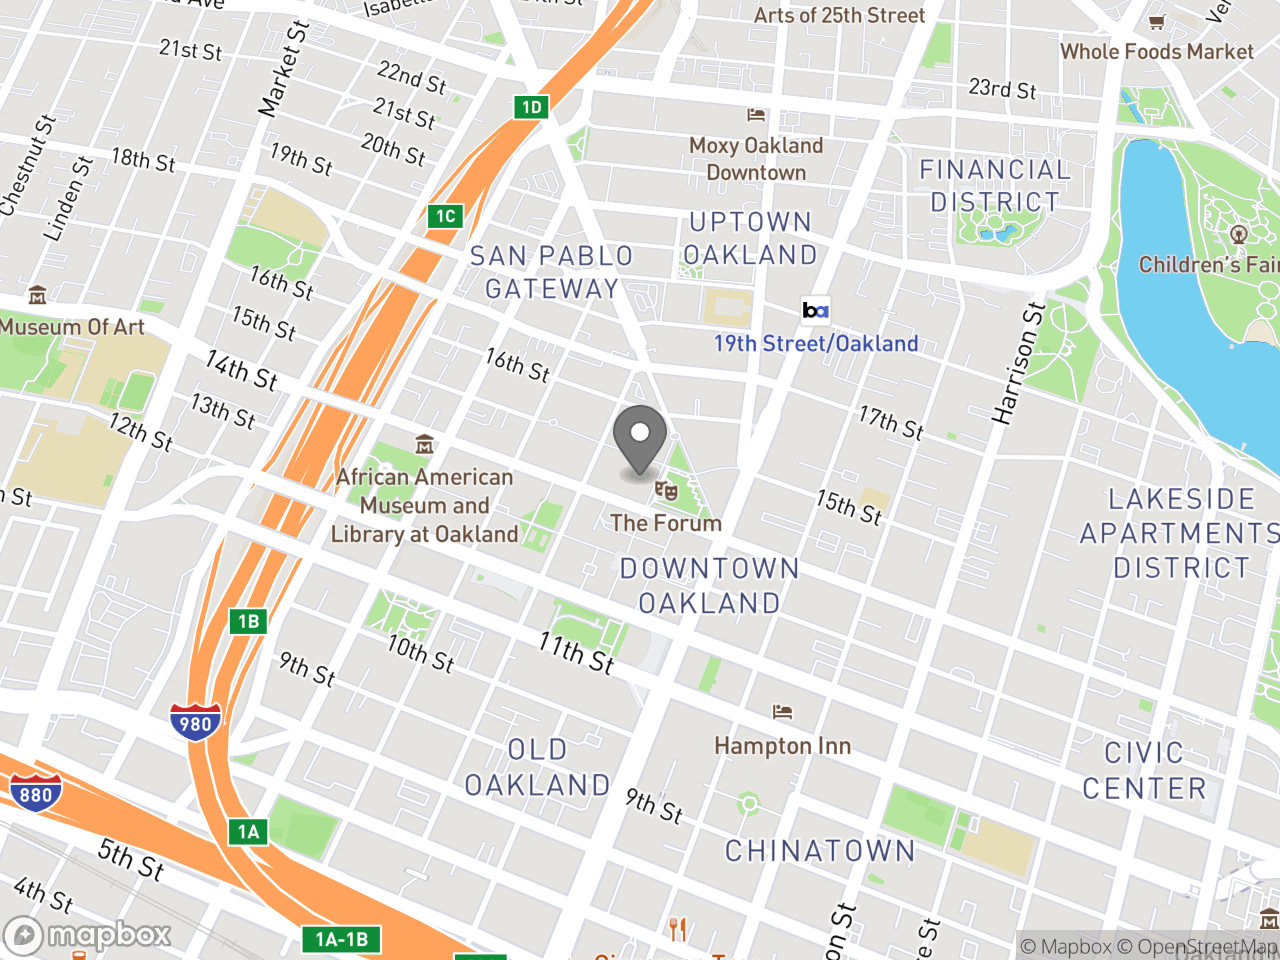 Map image for Police and Fire Retirement Board Meeting, February 28, 2018, located at 1 Frank H Ogawa Plaza in Oakland, CA 94612